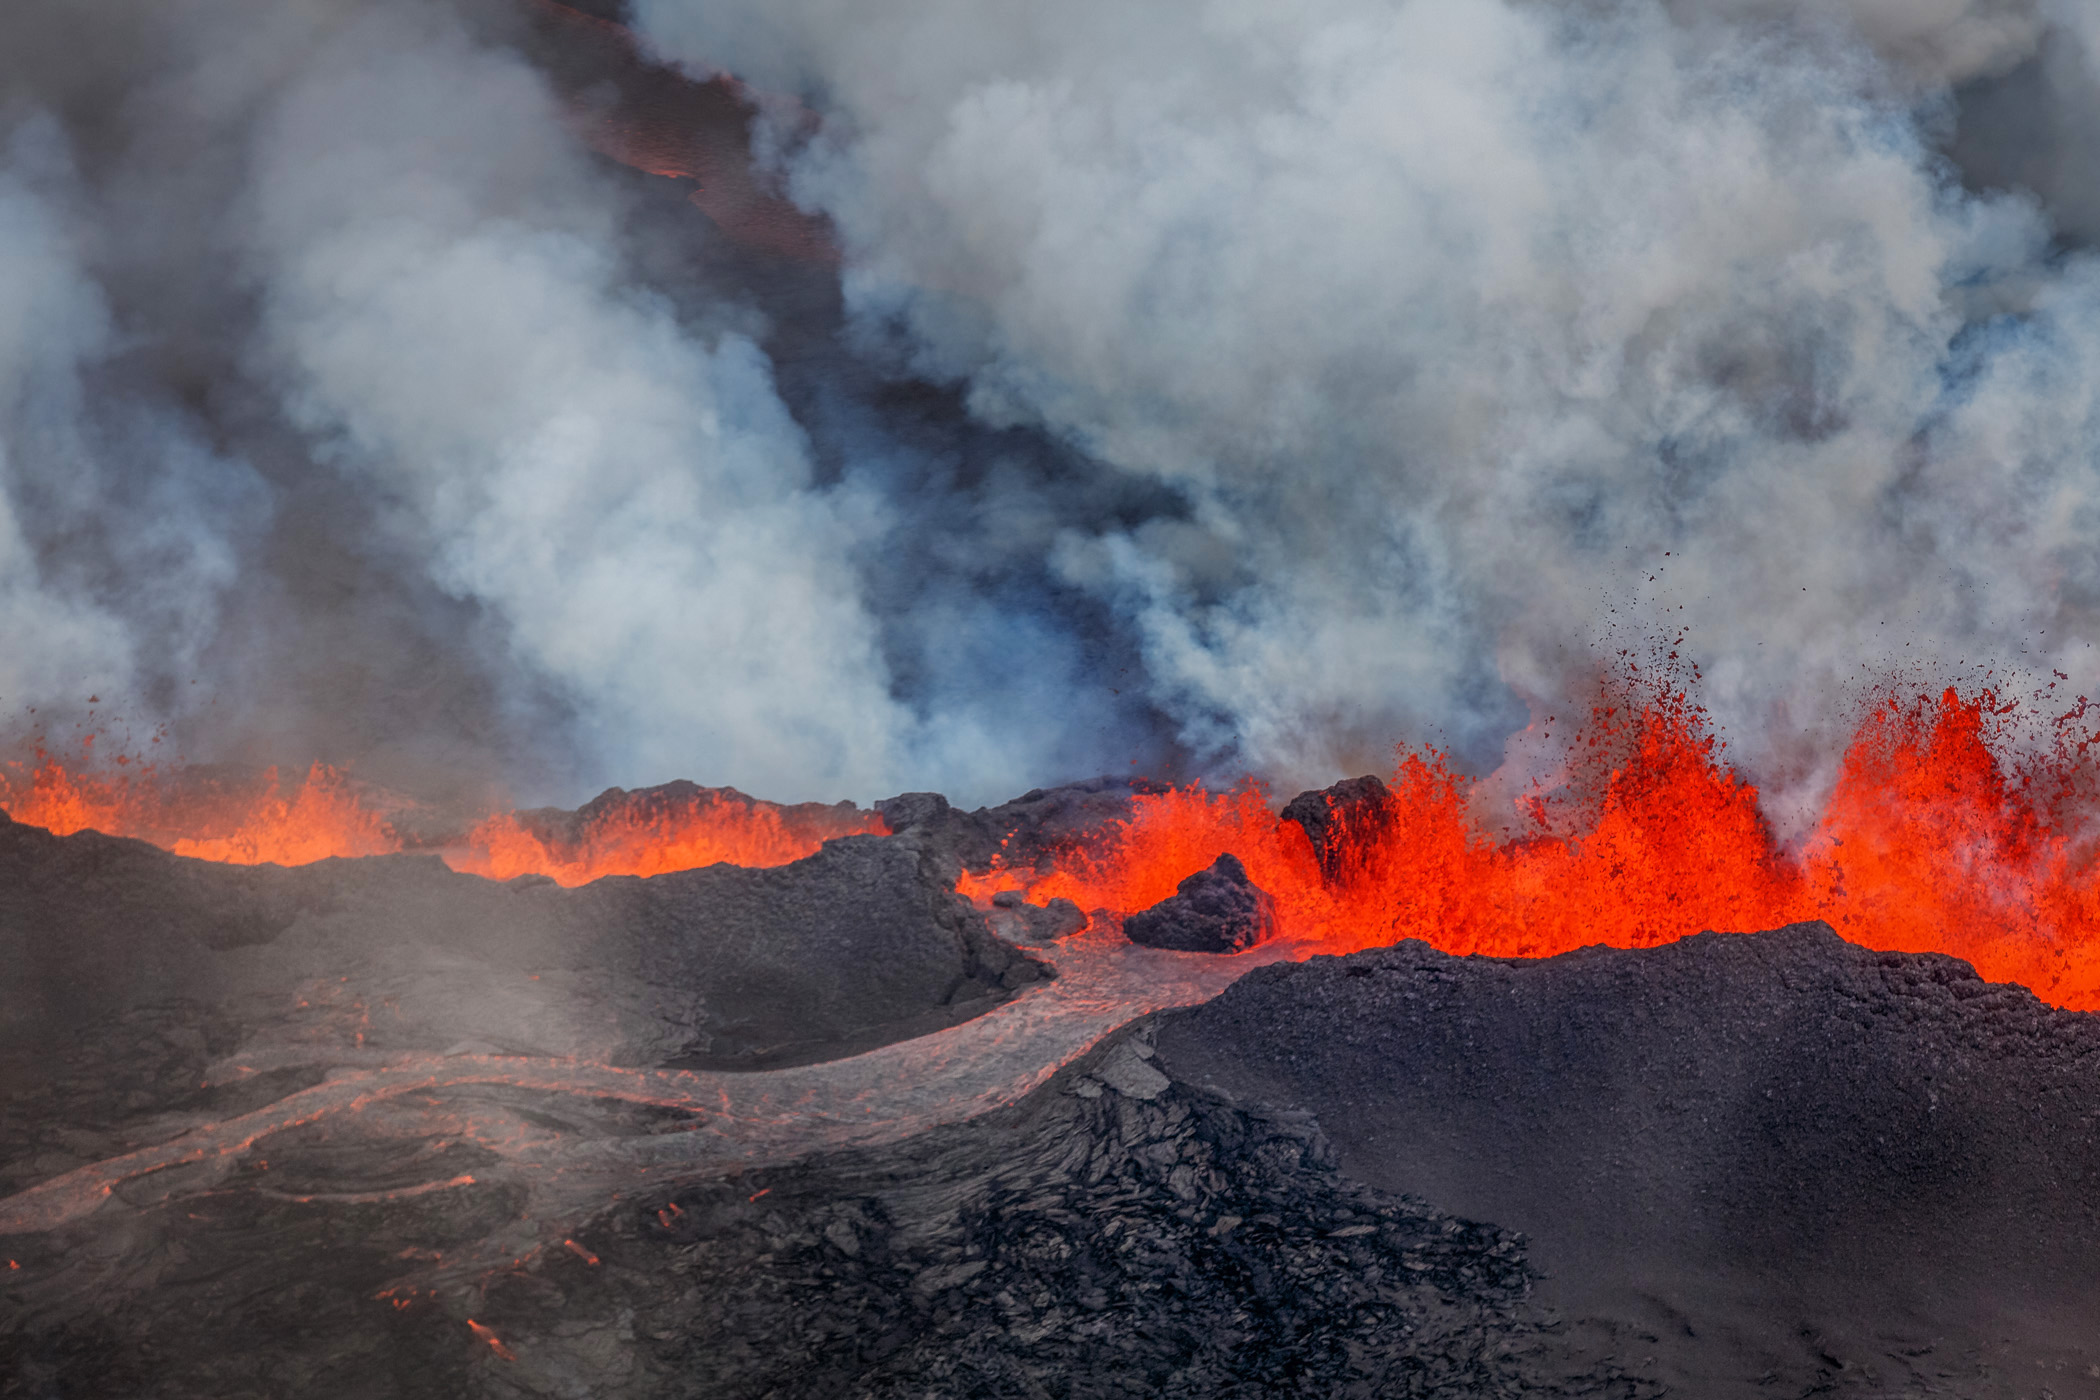 A close-up view of the lava flow and massive plumb of water vapor. Bardarbunga, Sept. 1, 2014.